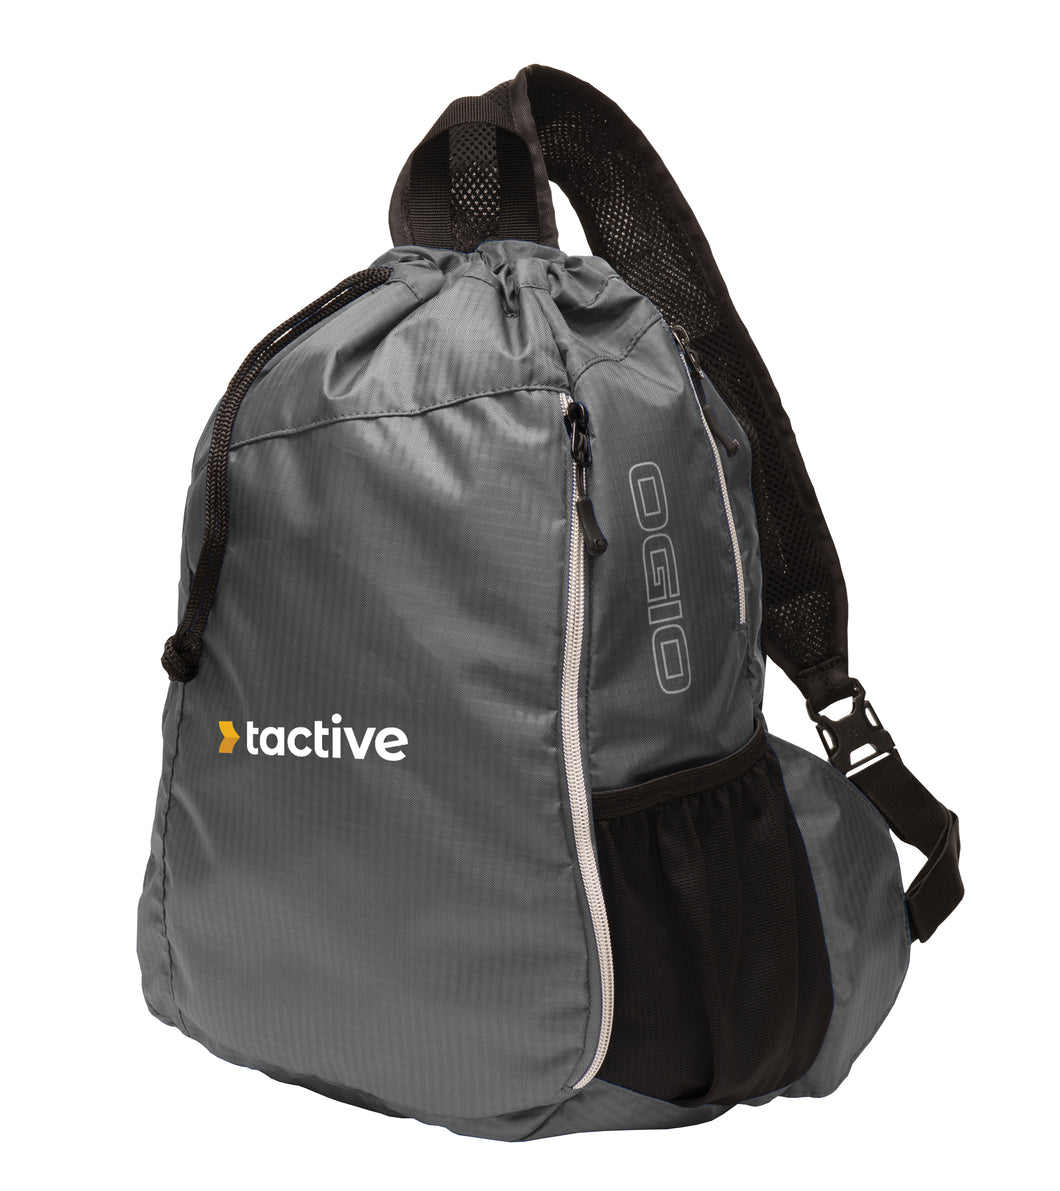 Tactive Sonic Sling Pack